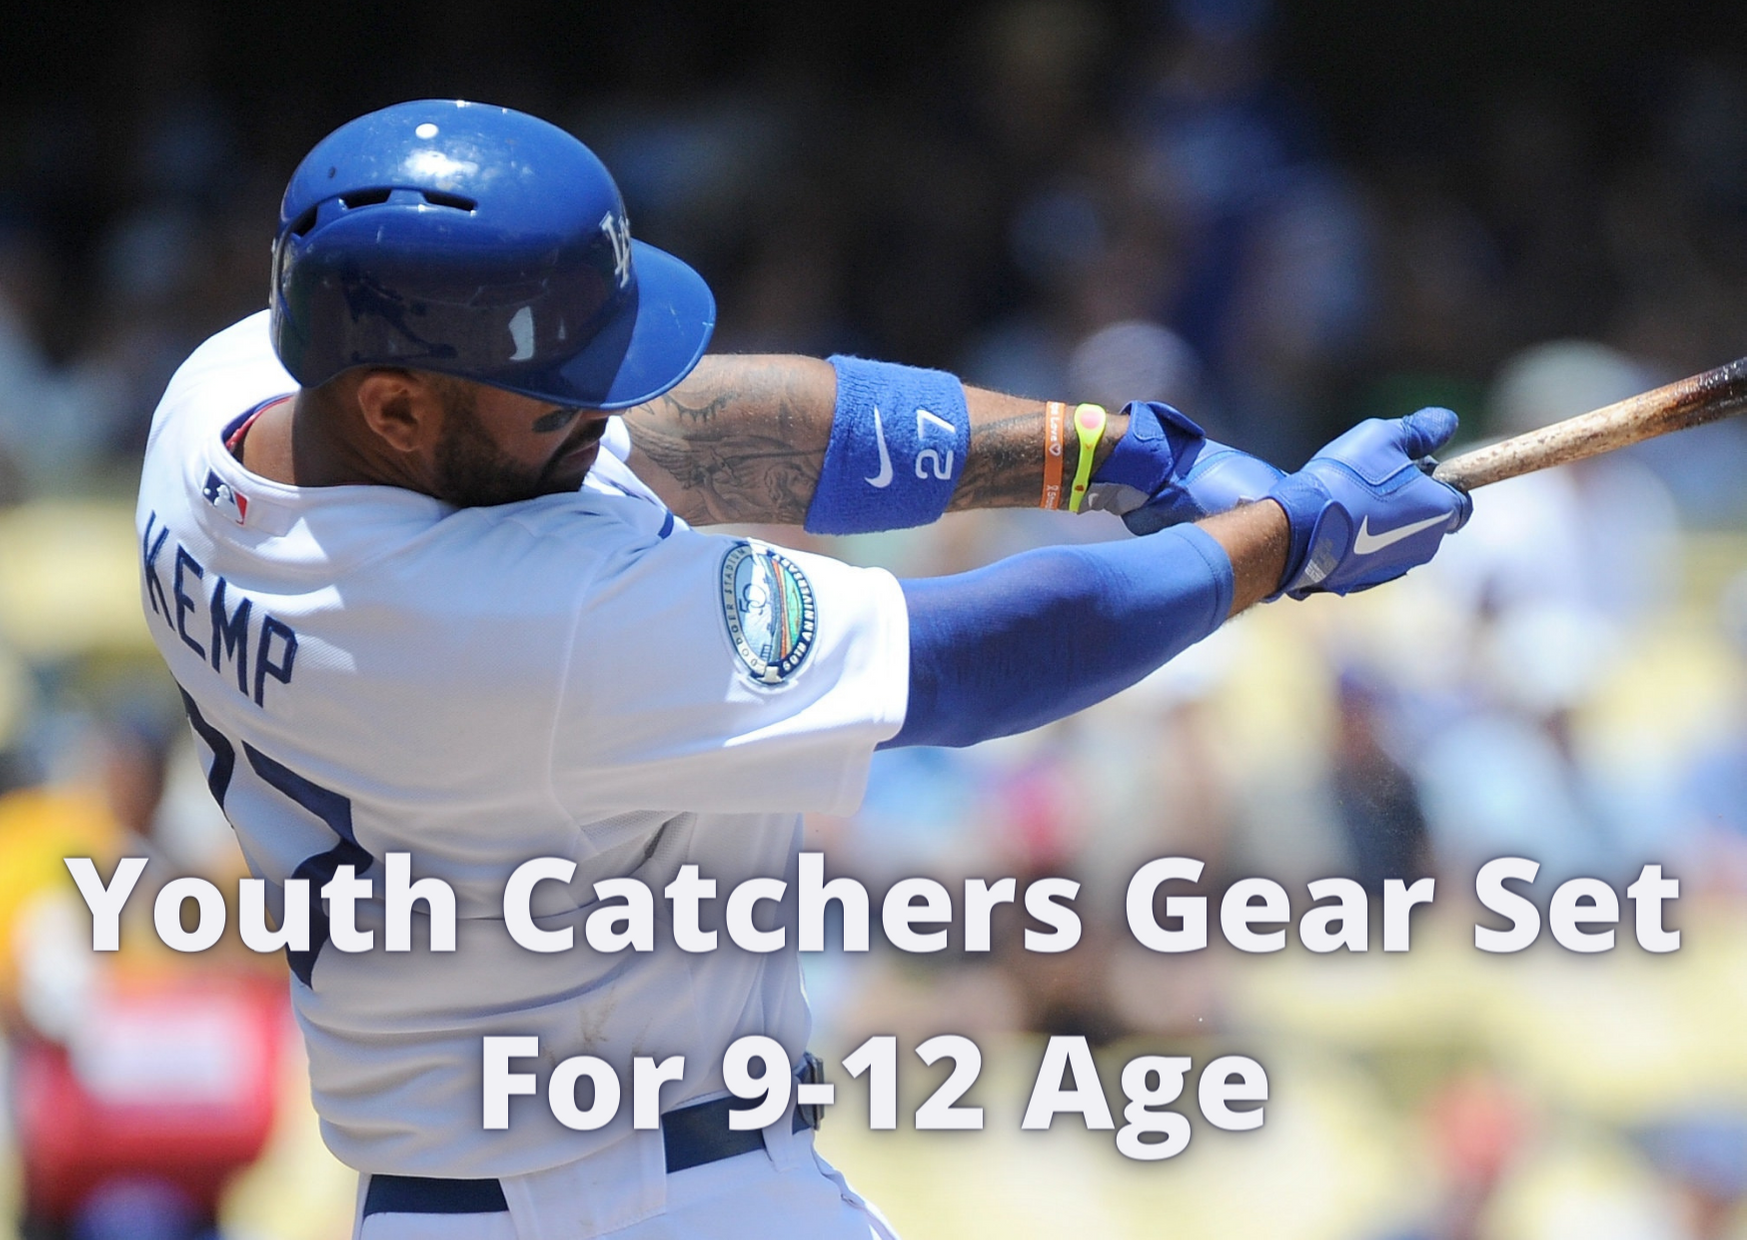 youth catchers gear 9-12